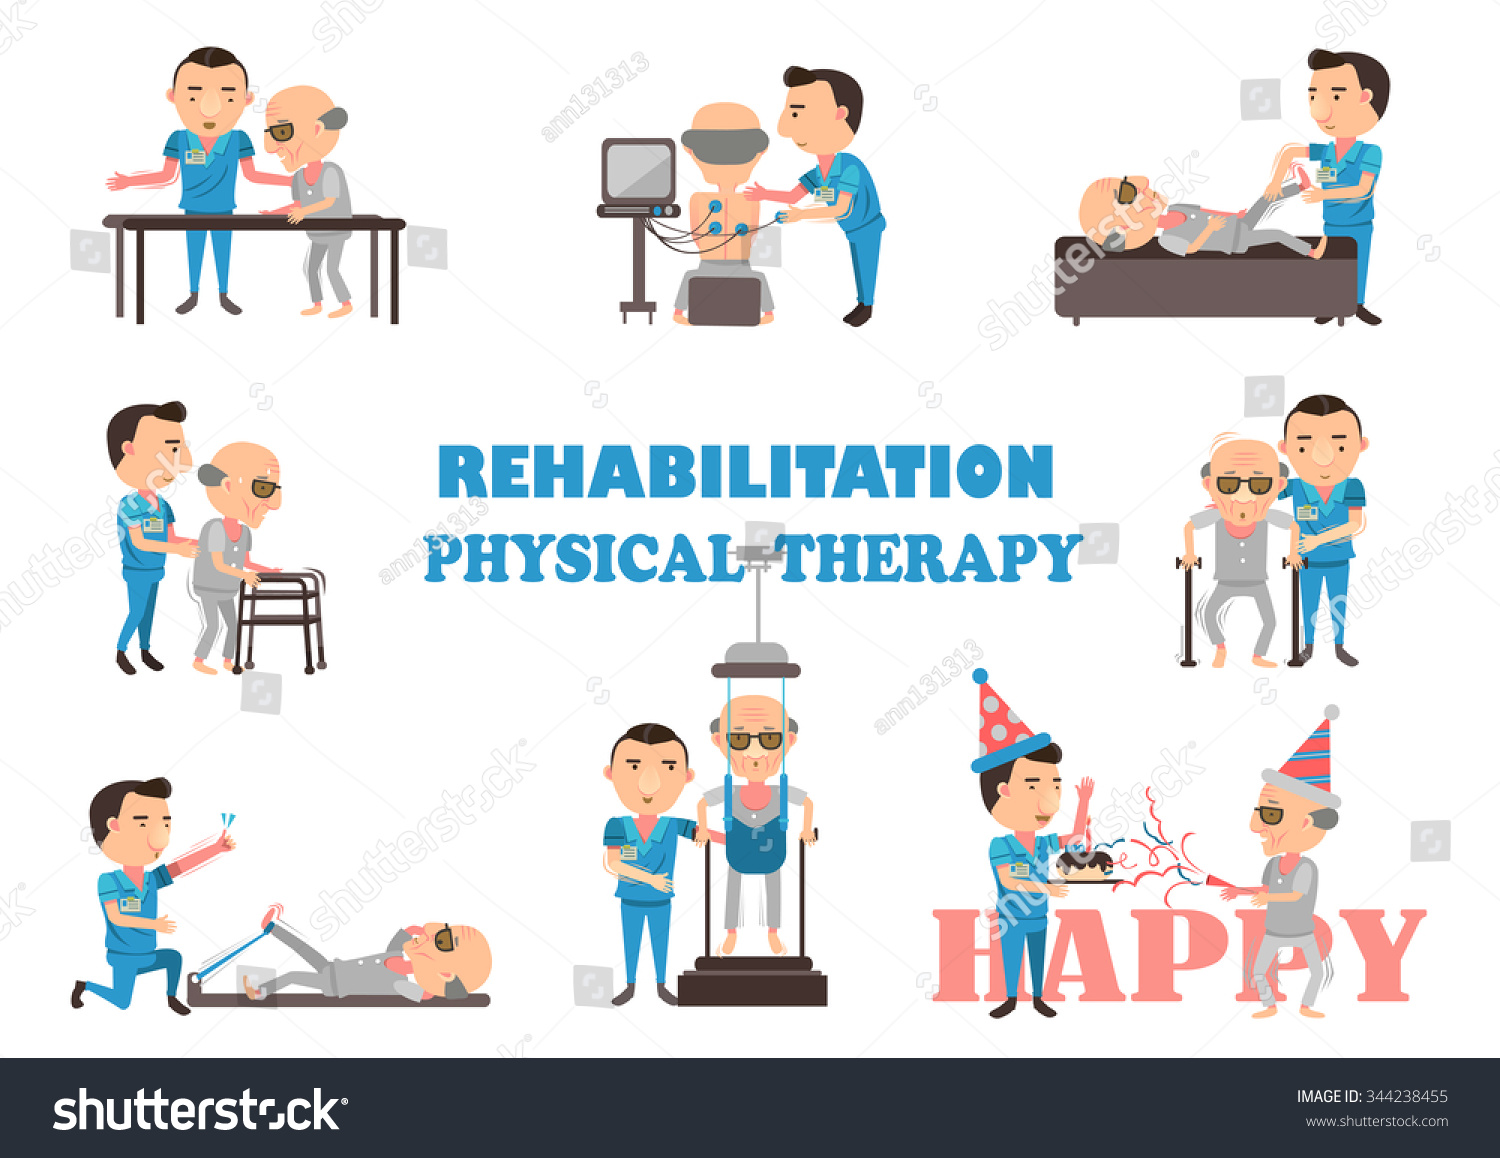 Cartoon physical therapy - The Physical Therapy Is Working Caregivers Cartoon Vector Illustration